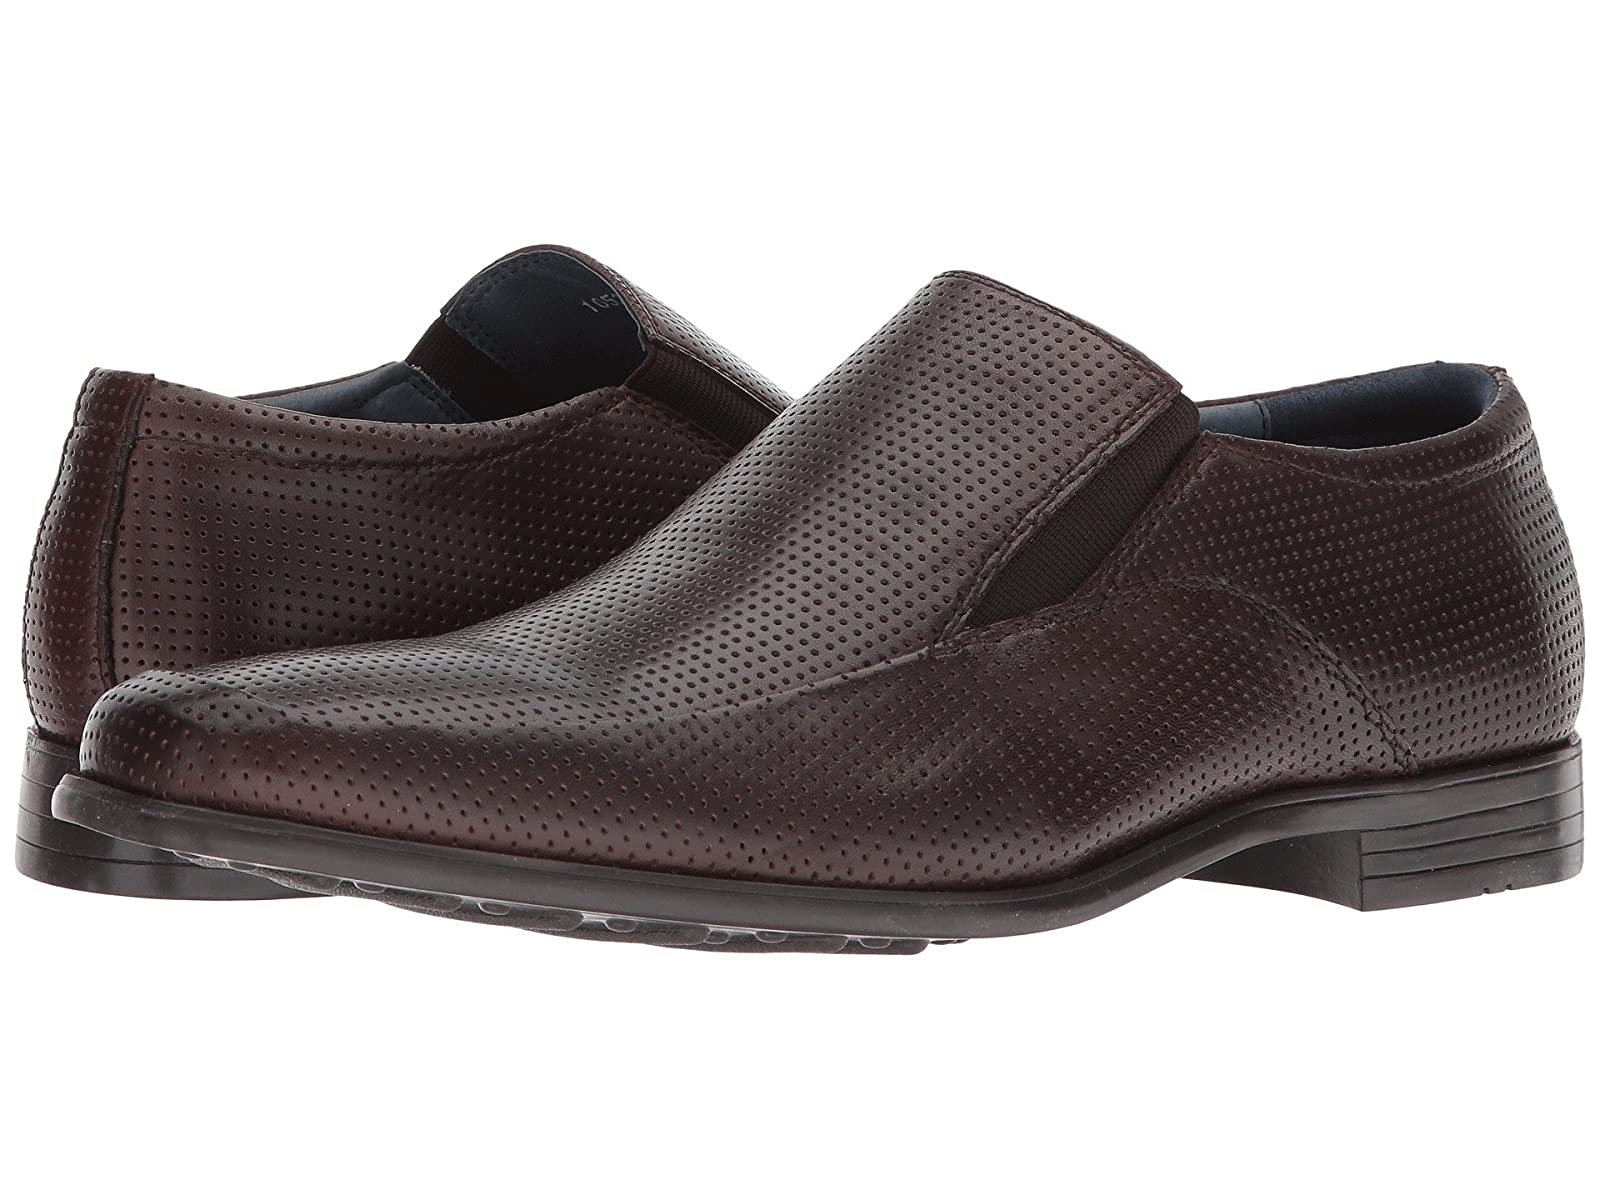 RUSH by Gordon Rush ChaseAtmospheric grades have affordable shoes